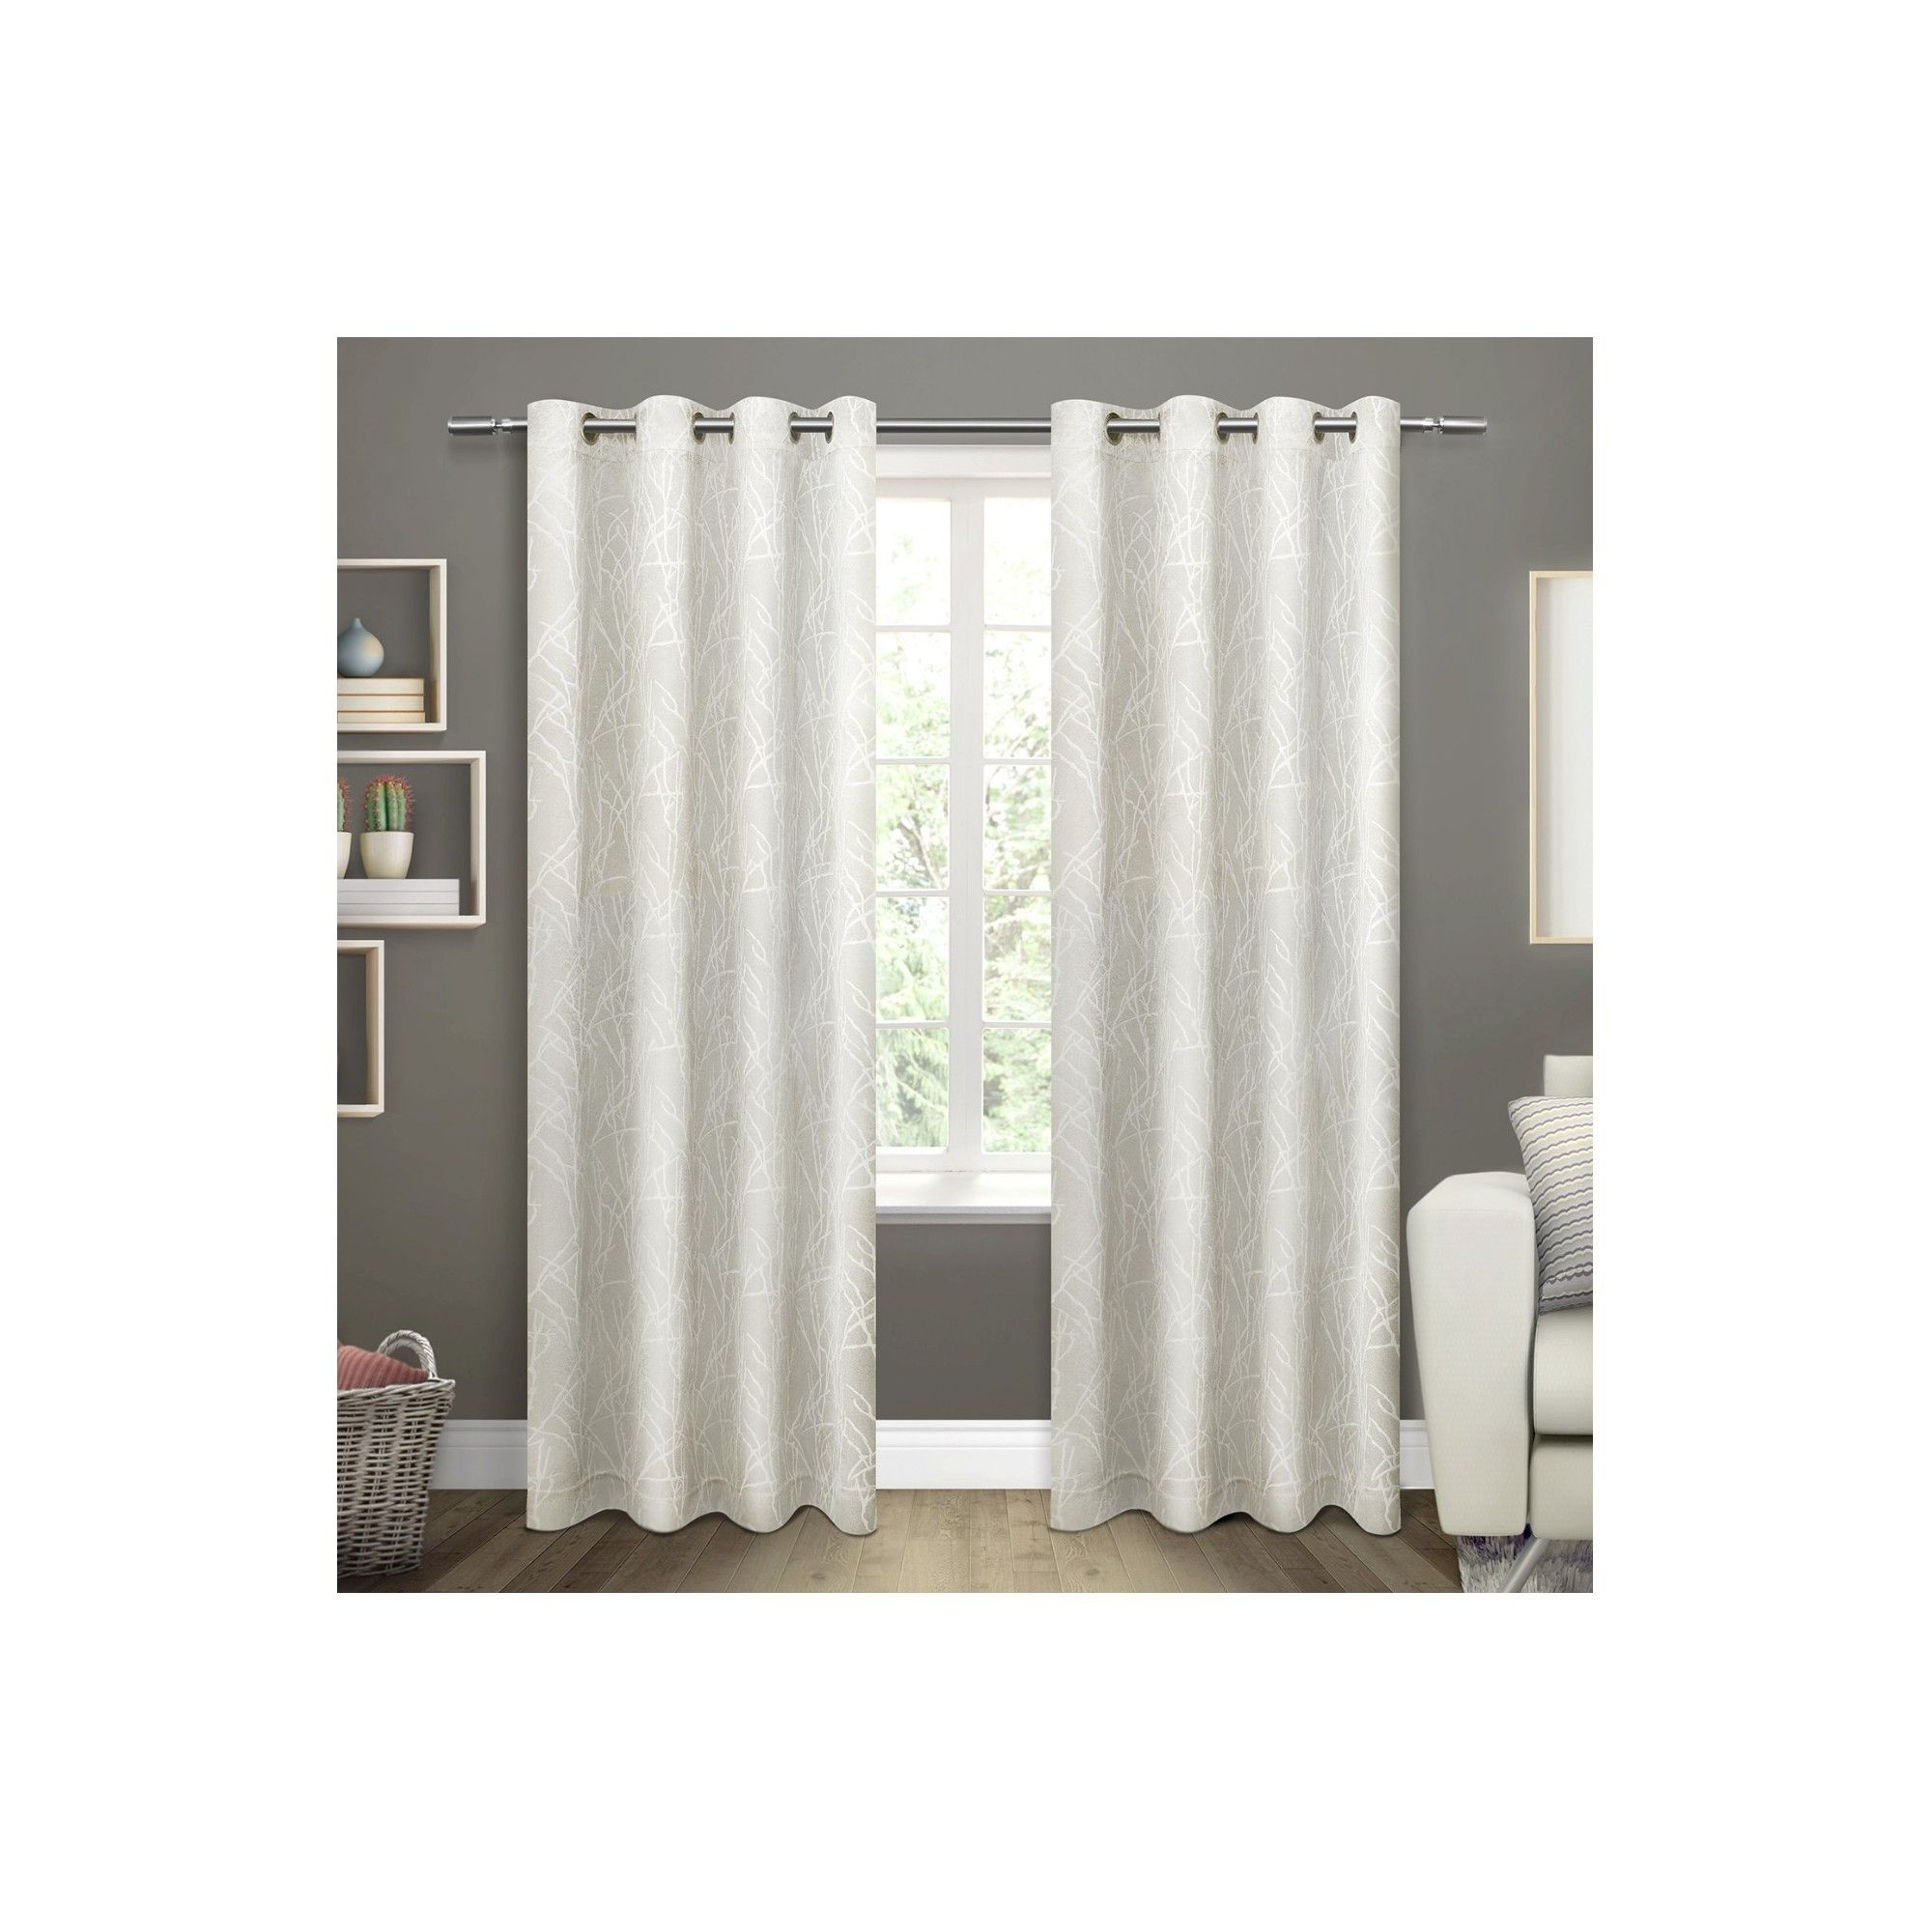 Twig Insulated Woven Blackout Grommet Top Window Curtain For The Curated Nomad Duane Jacquard Grommet Top Curtain Panel Pairs (View 23 of 30)